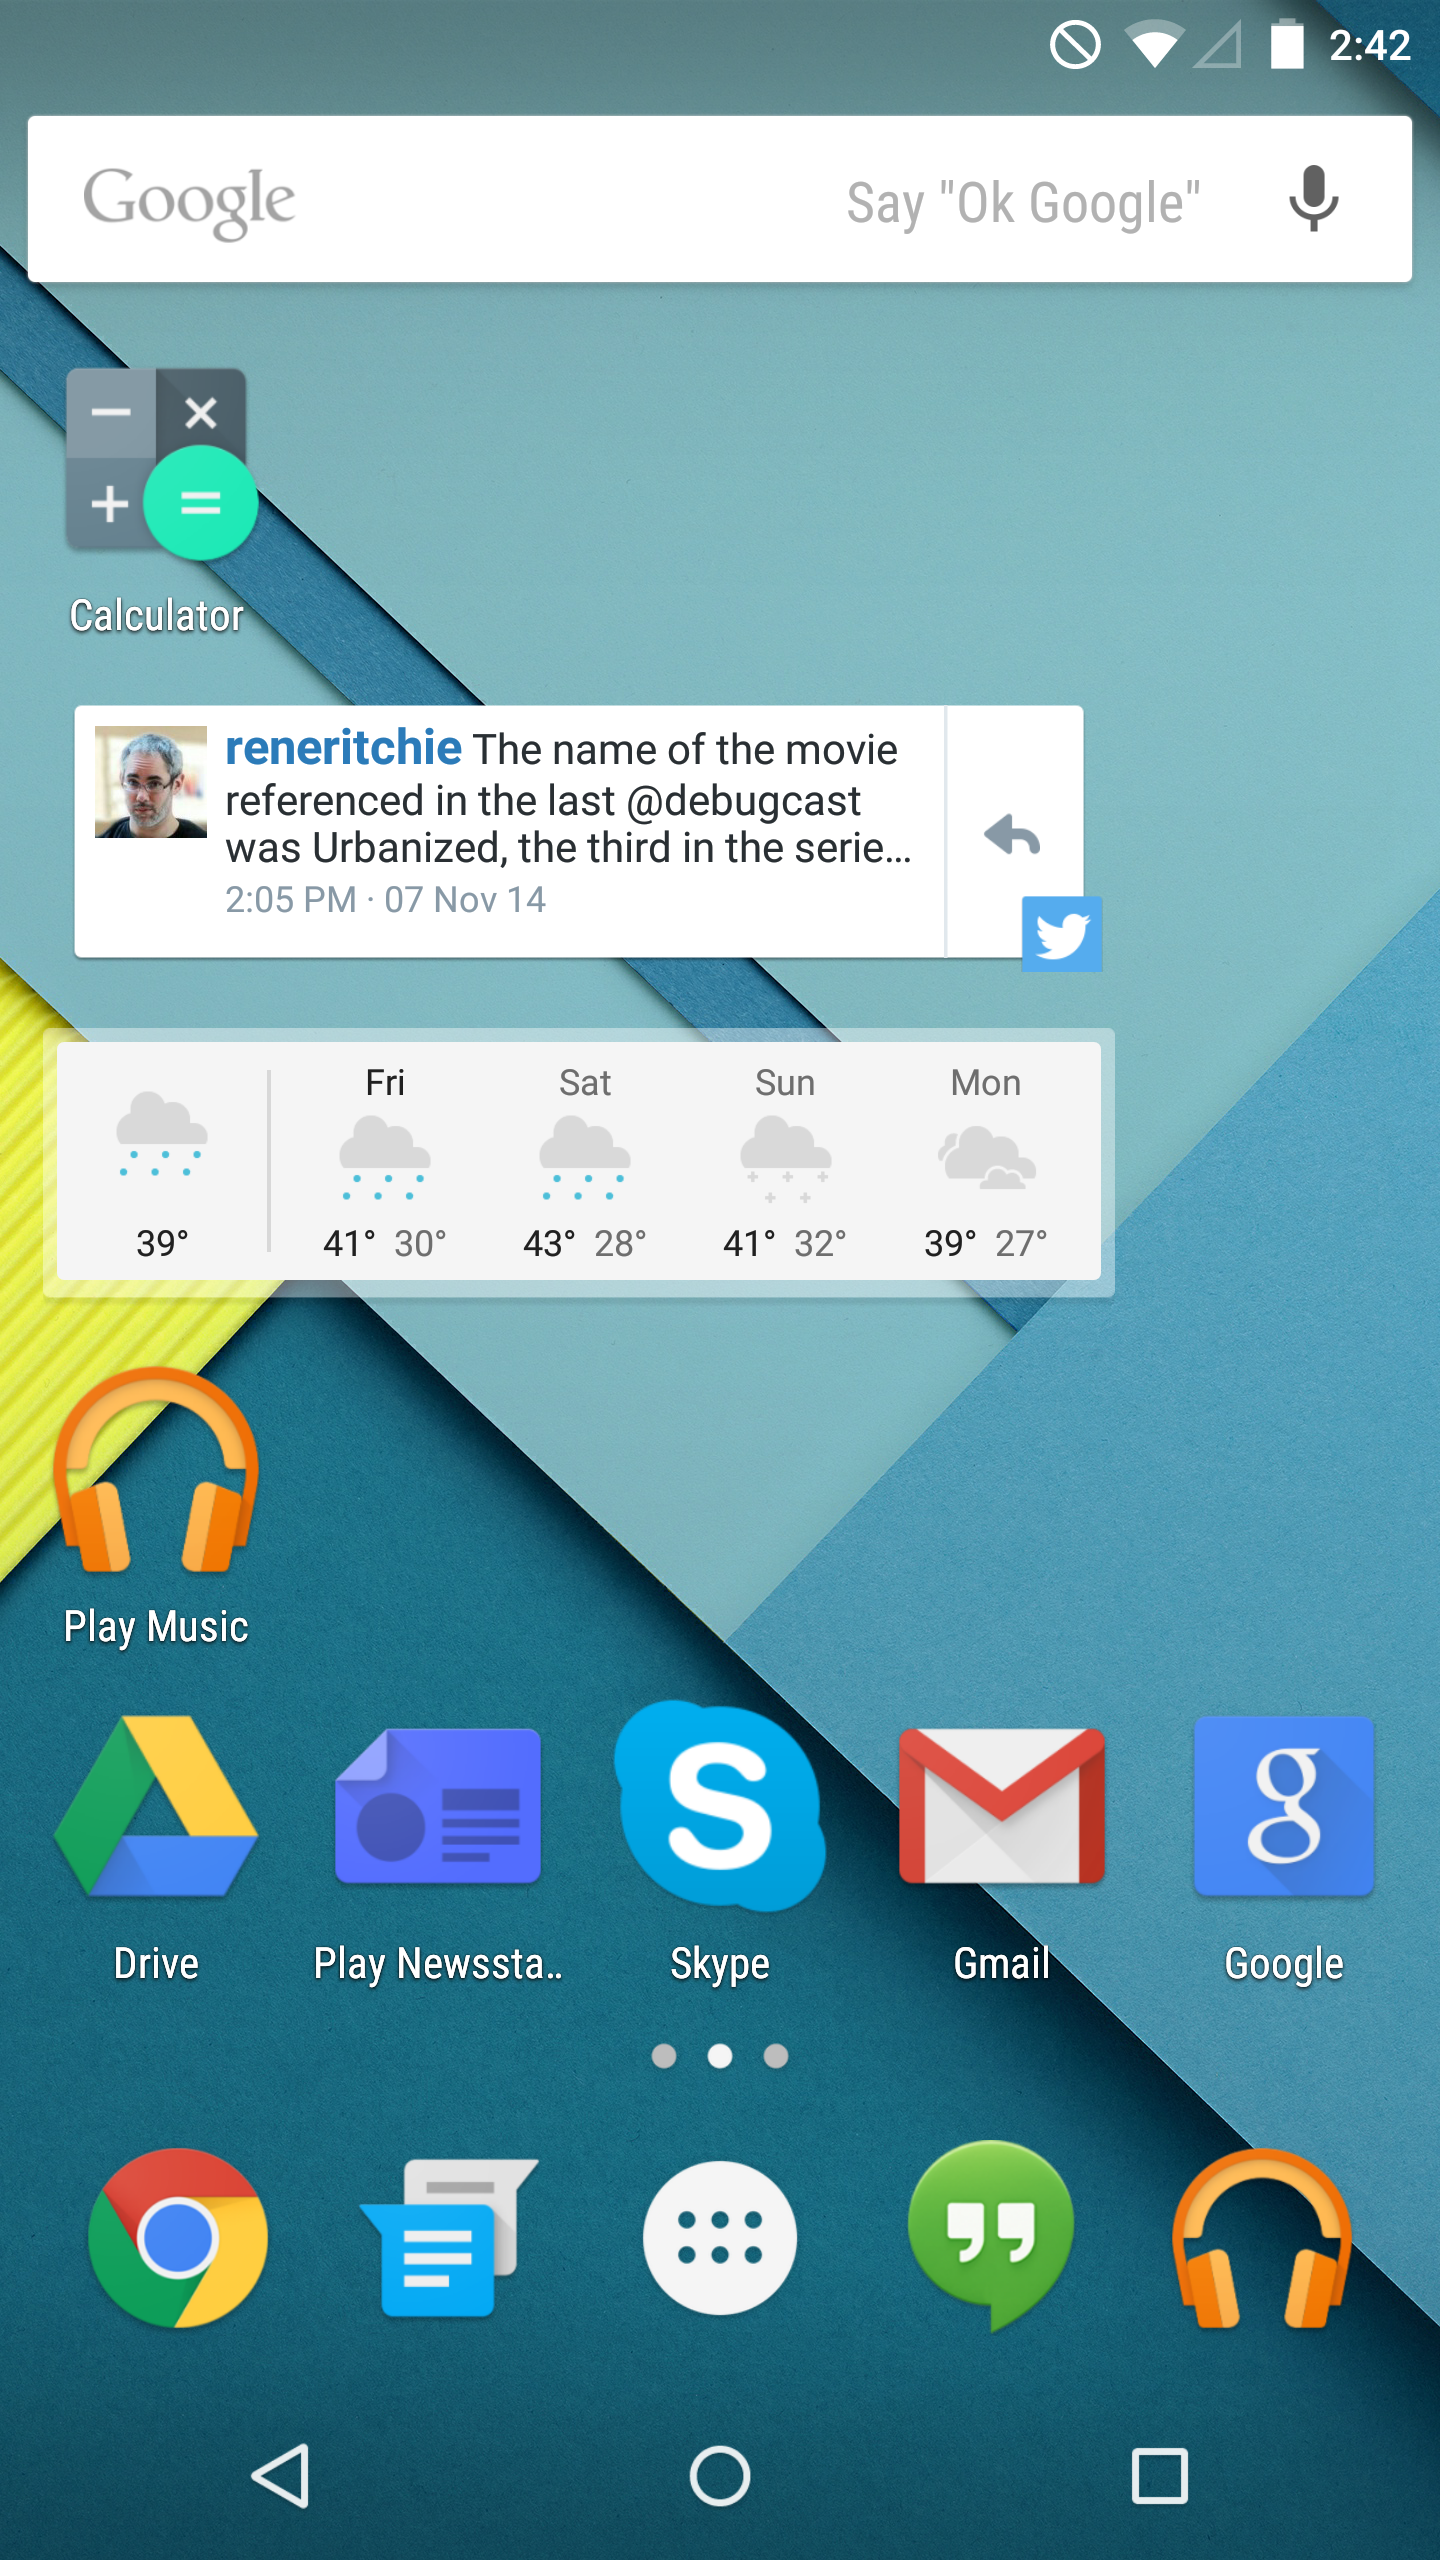 Software: Android Lollipop - The Nexus 6 Review